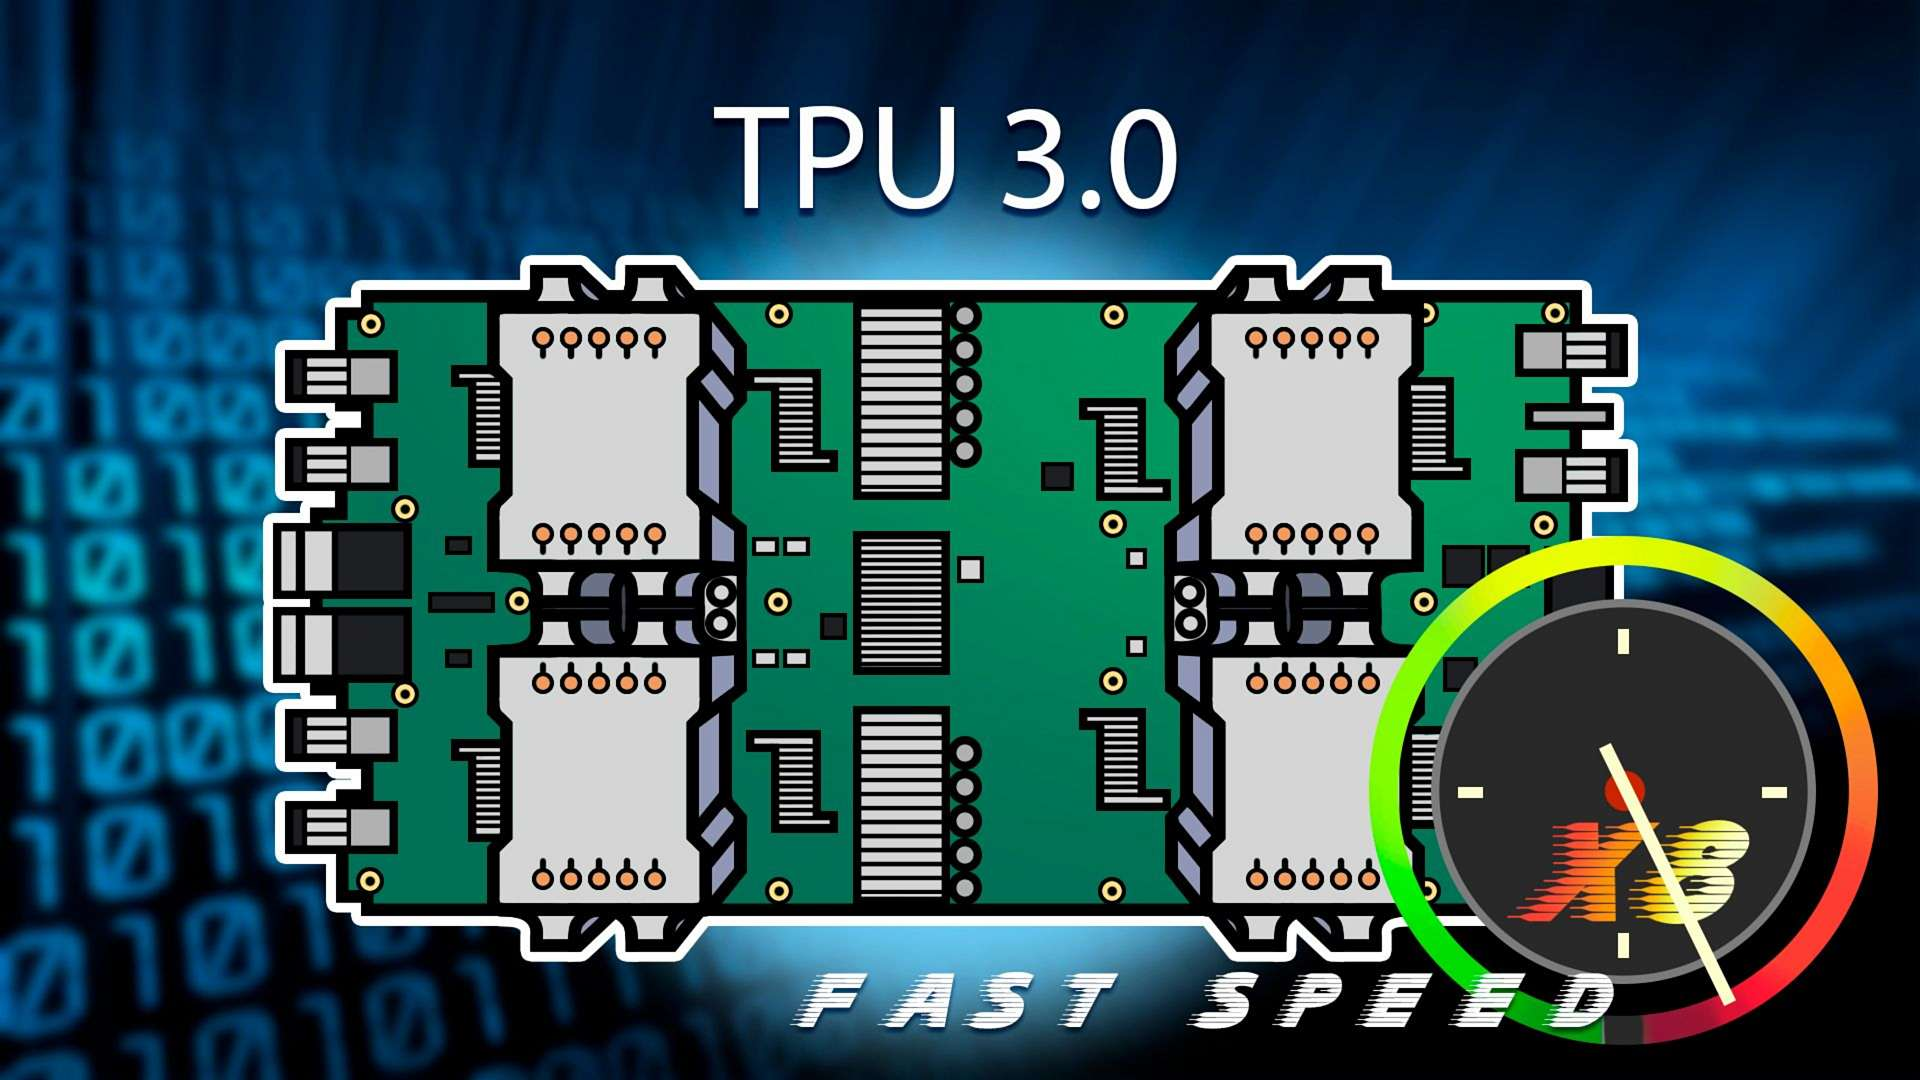 Google's TPU 3.0 Machine Hardware Accelerates and Becomes Faster